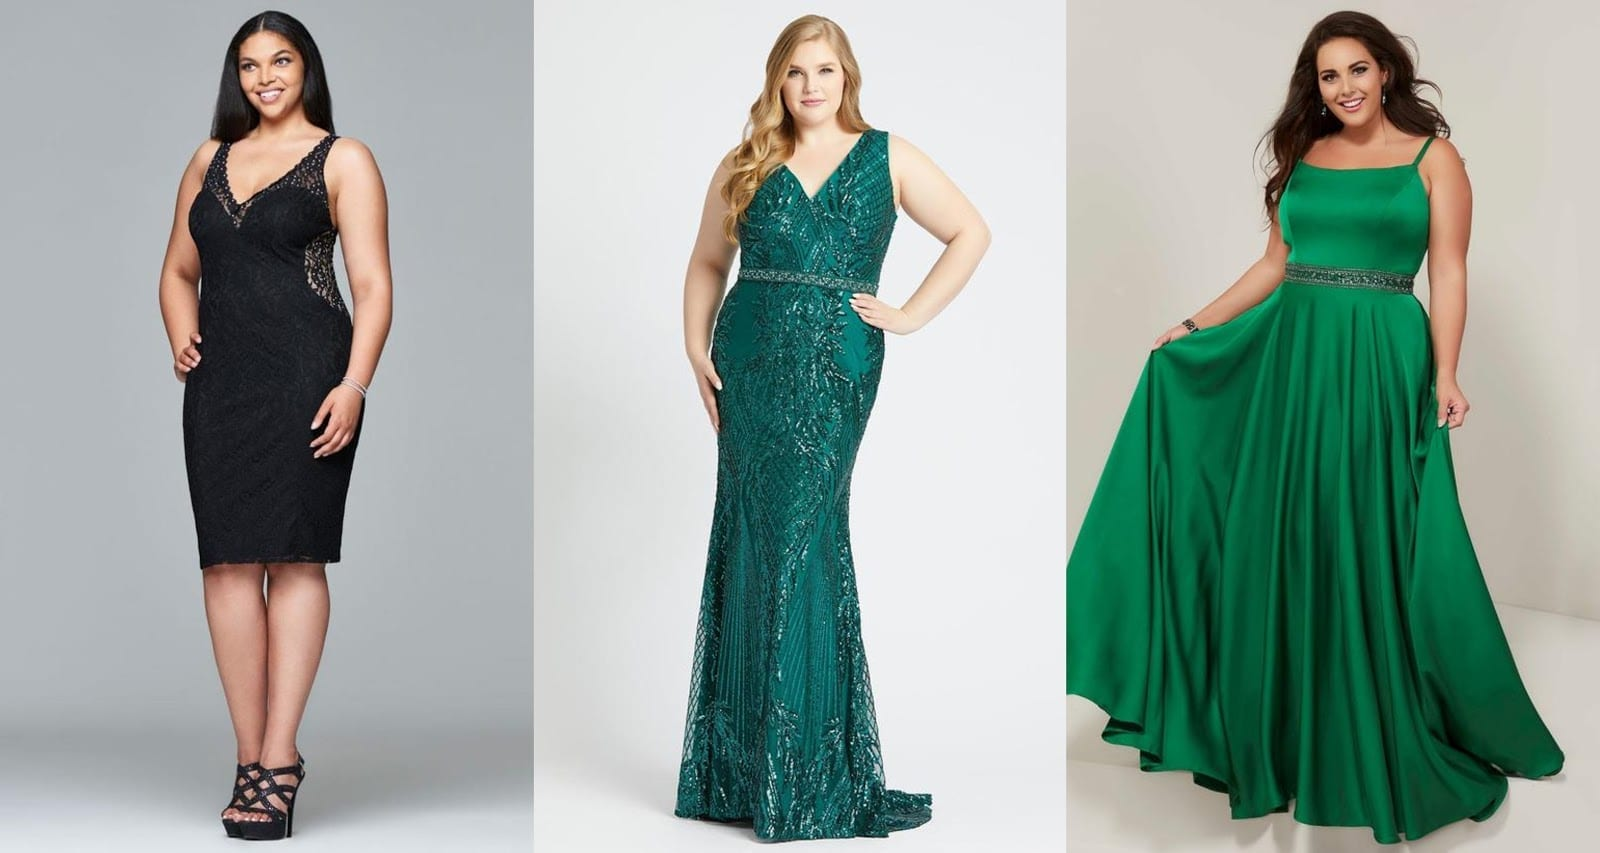 4 Useful Shopping Tips That Plus Size Women Must Know